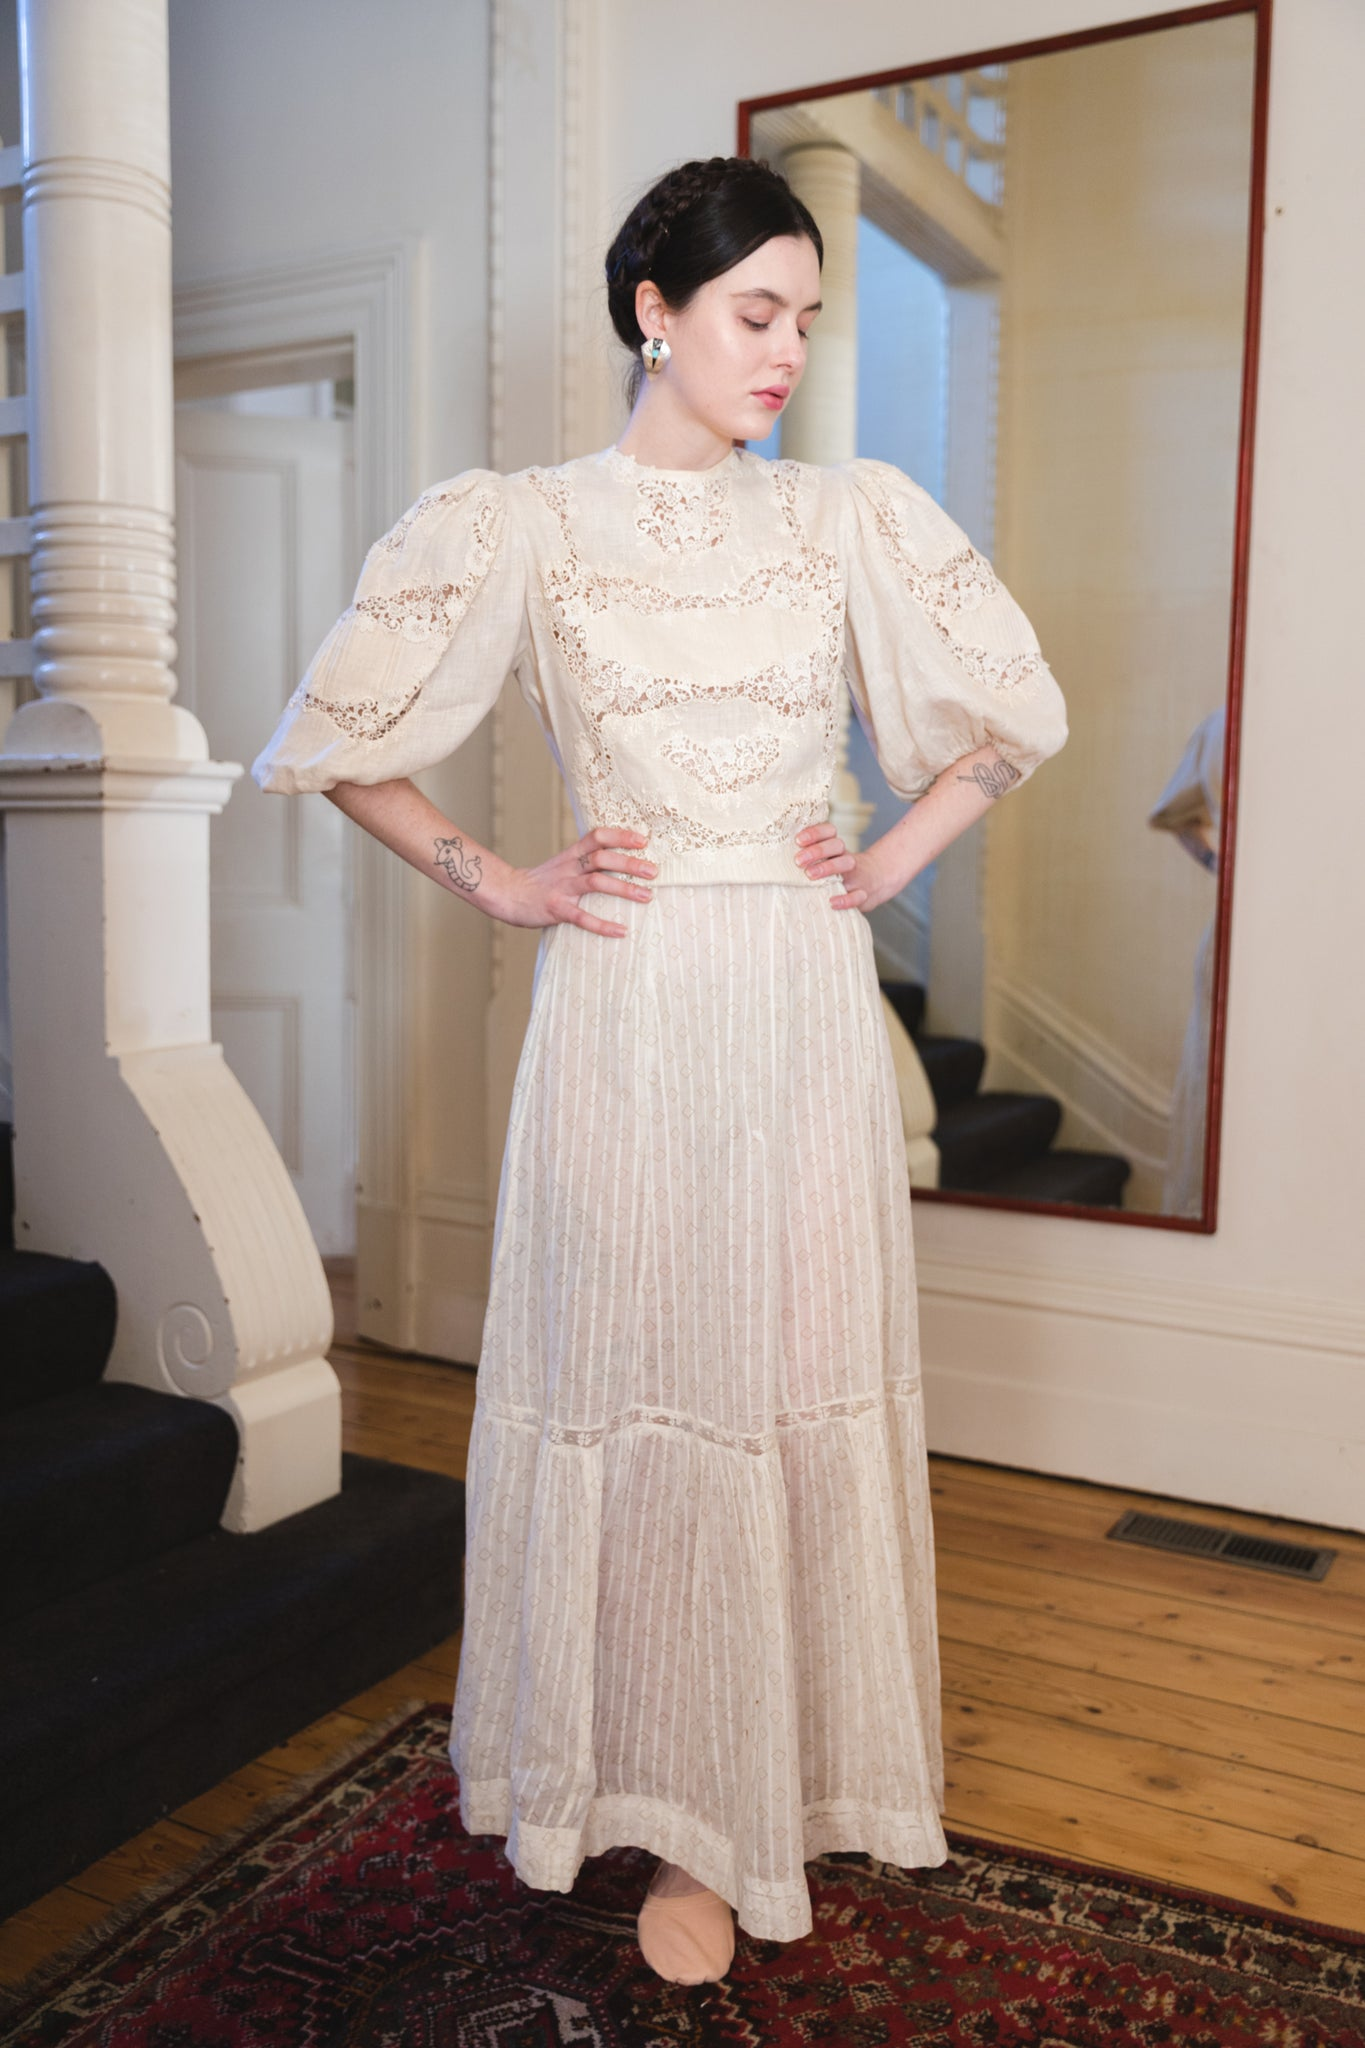 Edwardian printed cotton lace skirt